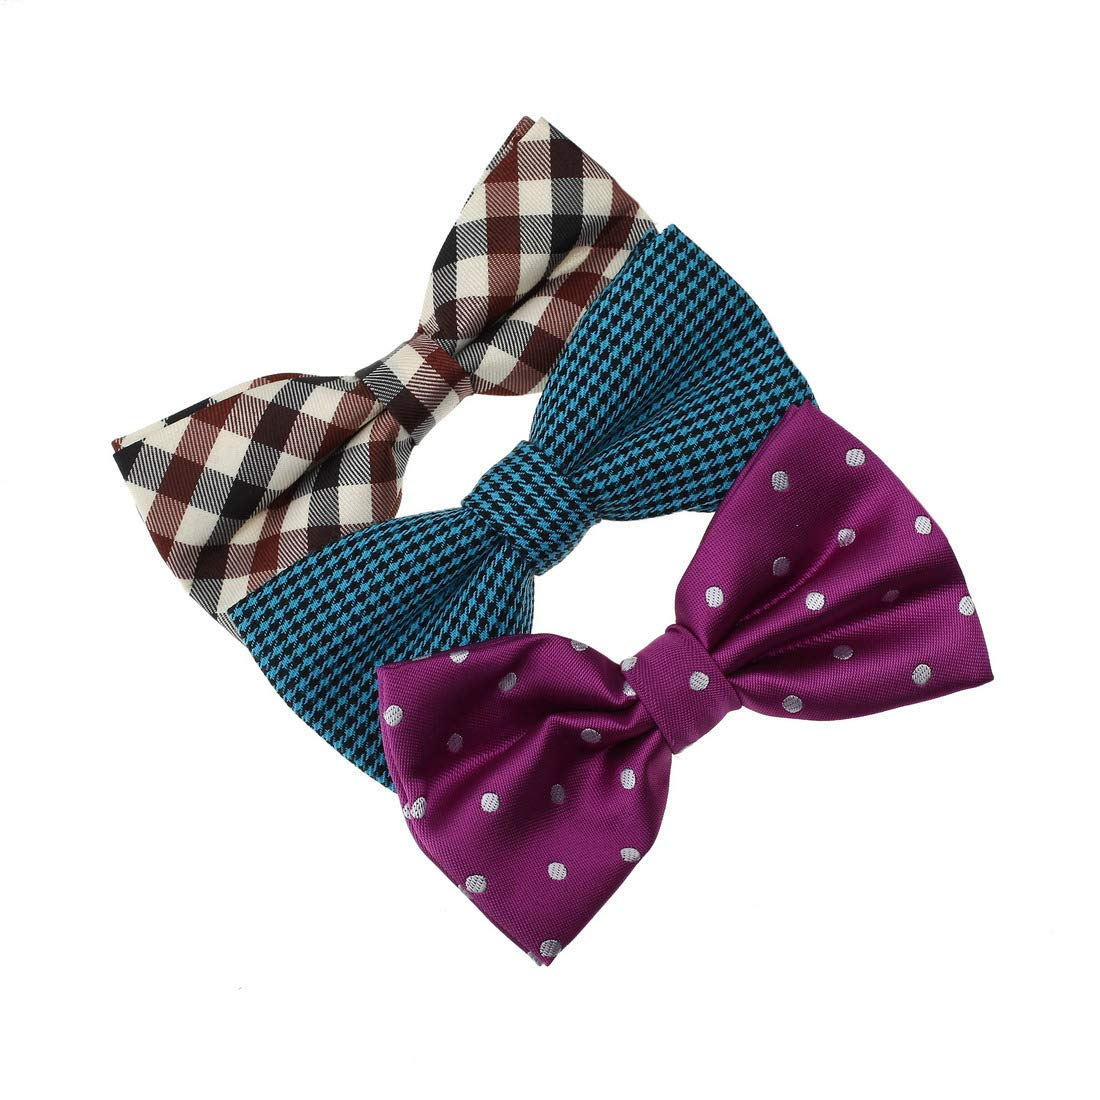 DBE0135 Find For Marriage Microfiber Bow ties Gift For Boy 3 Pack Bow Tie Set By Dan Smith